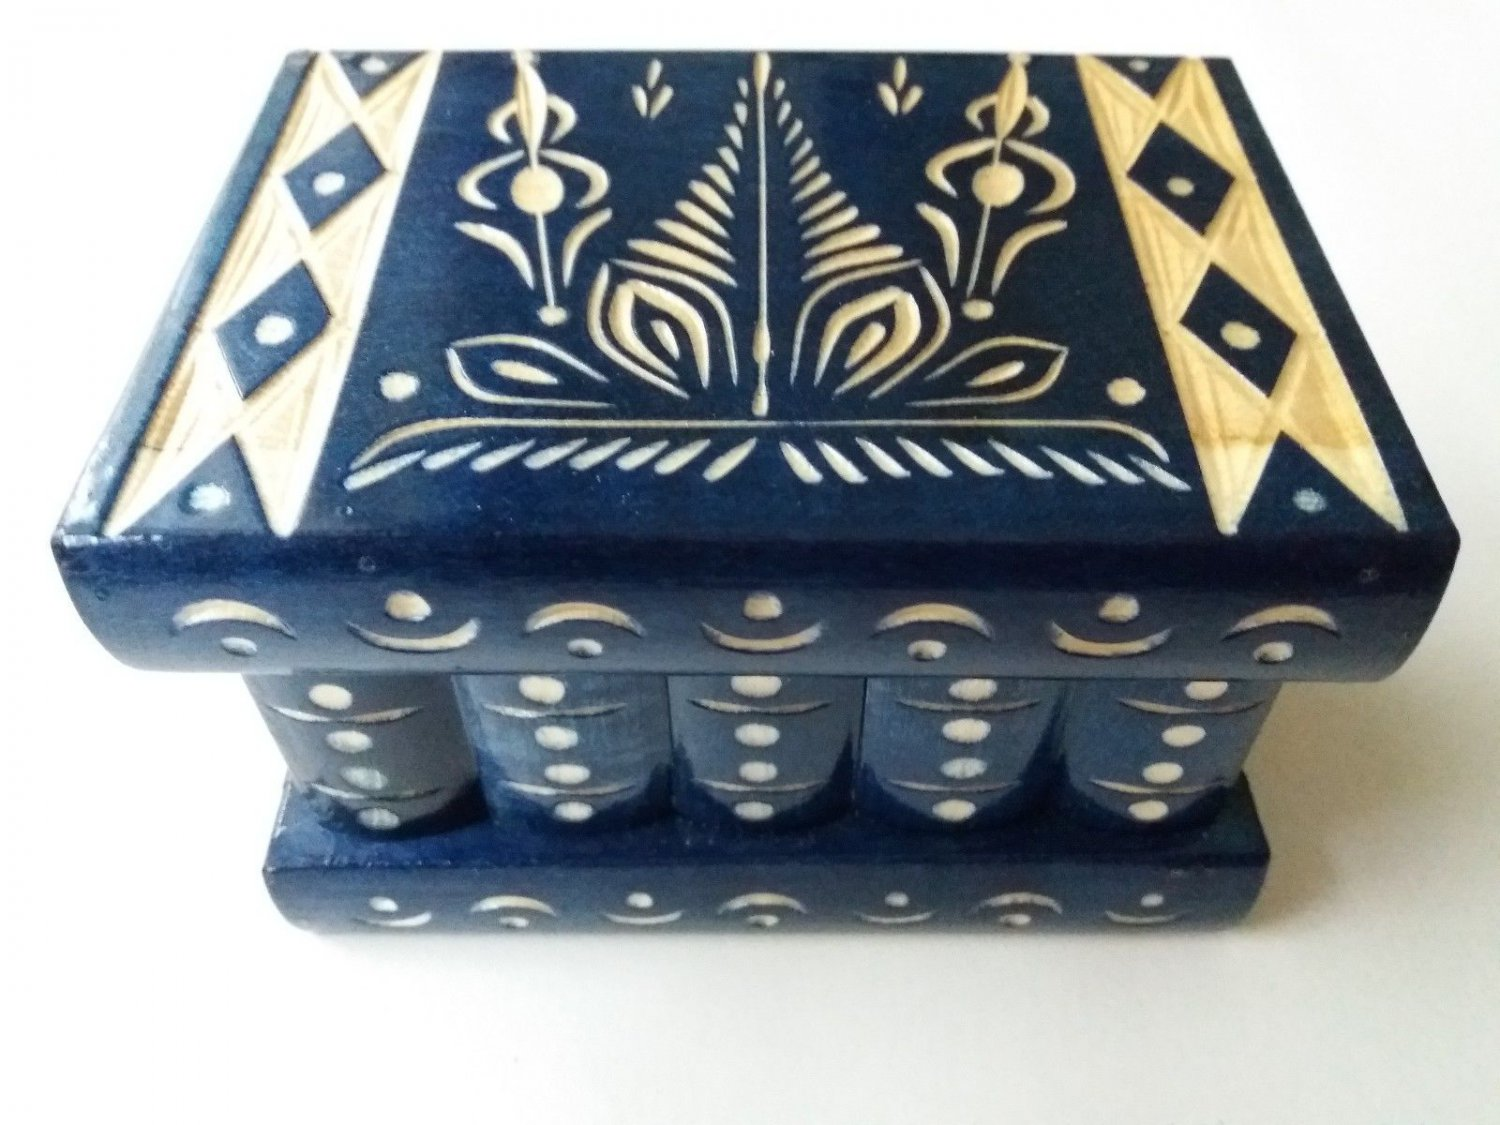 New blue handmade wooden puzzle magic storage jewelry secret mystery box